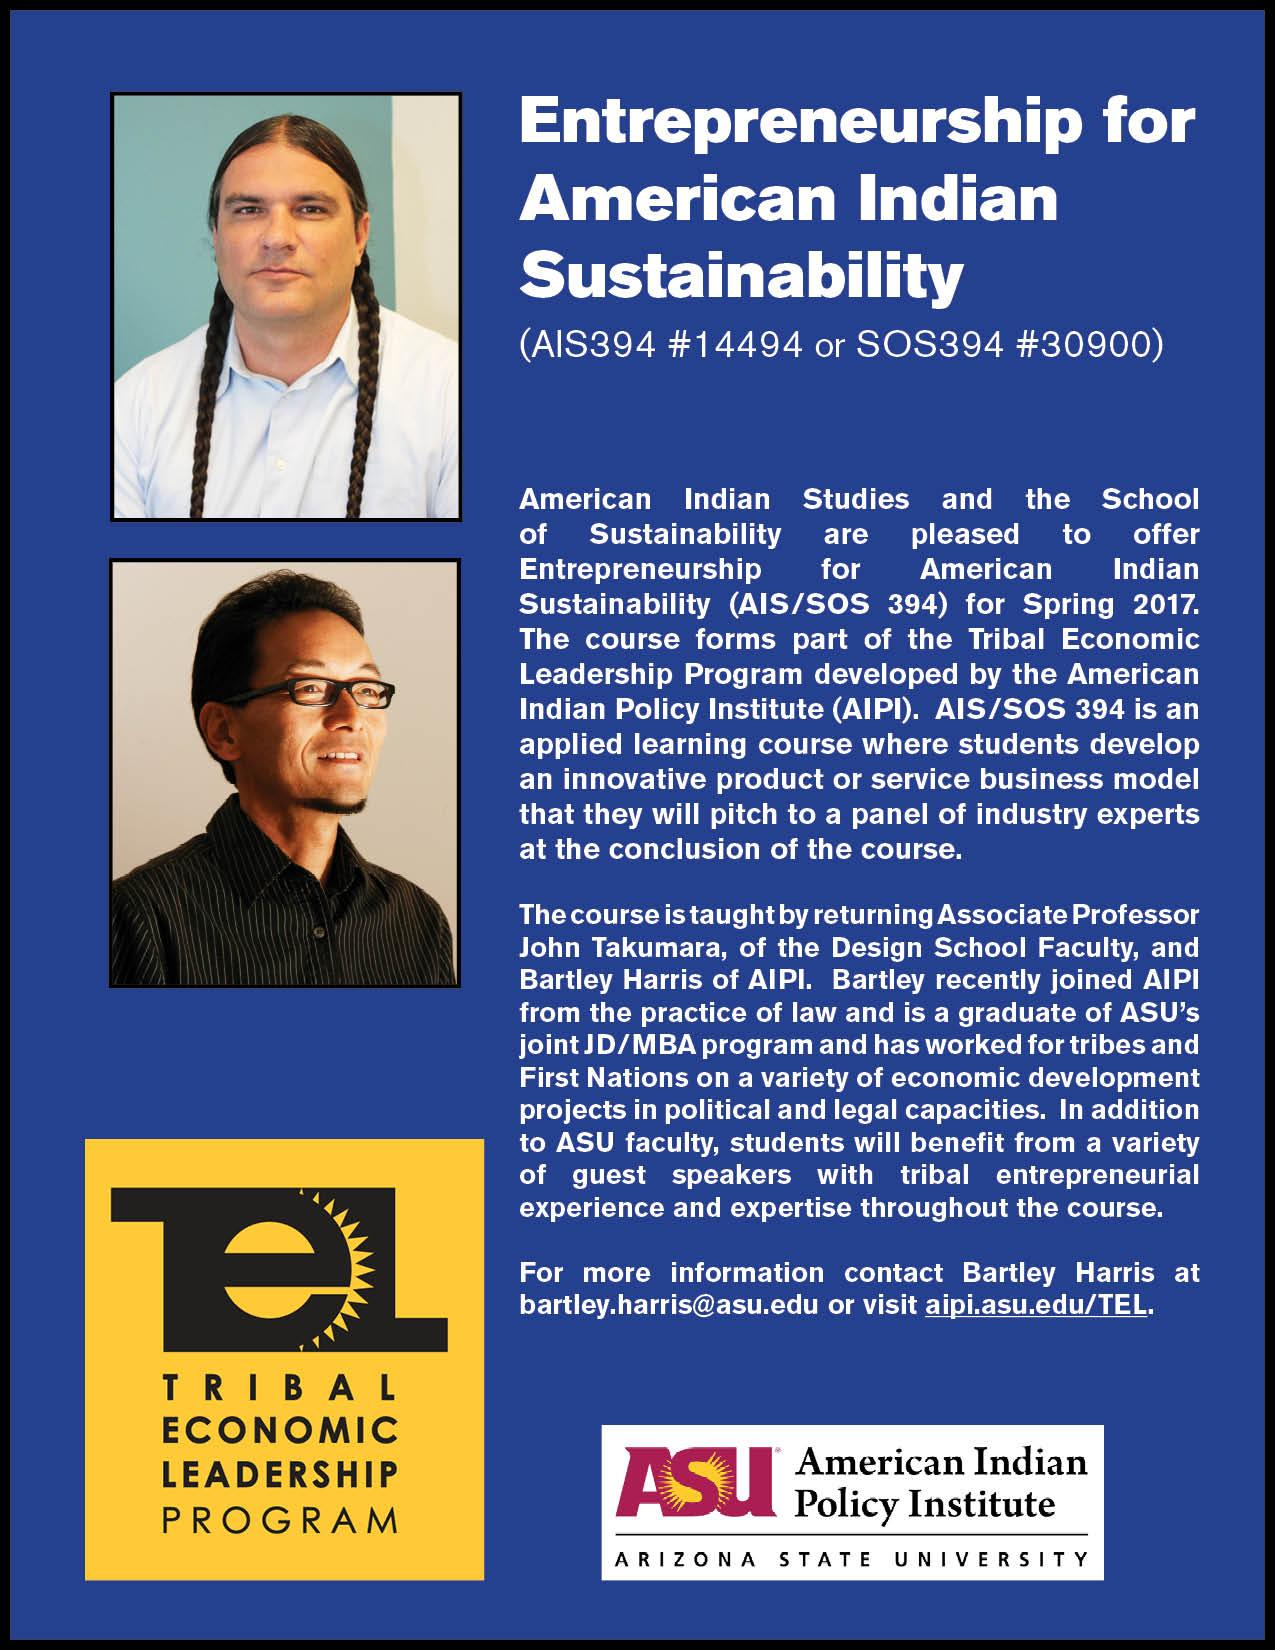 Entrepreneurship for American Indian Sustainability